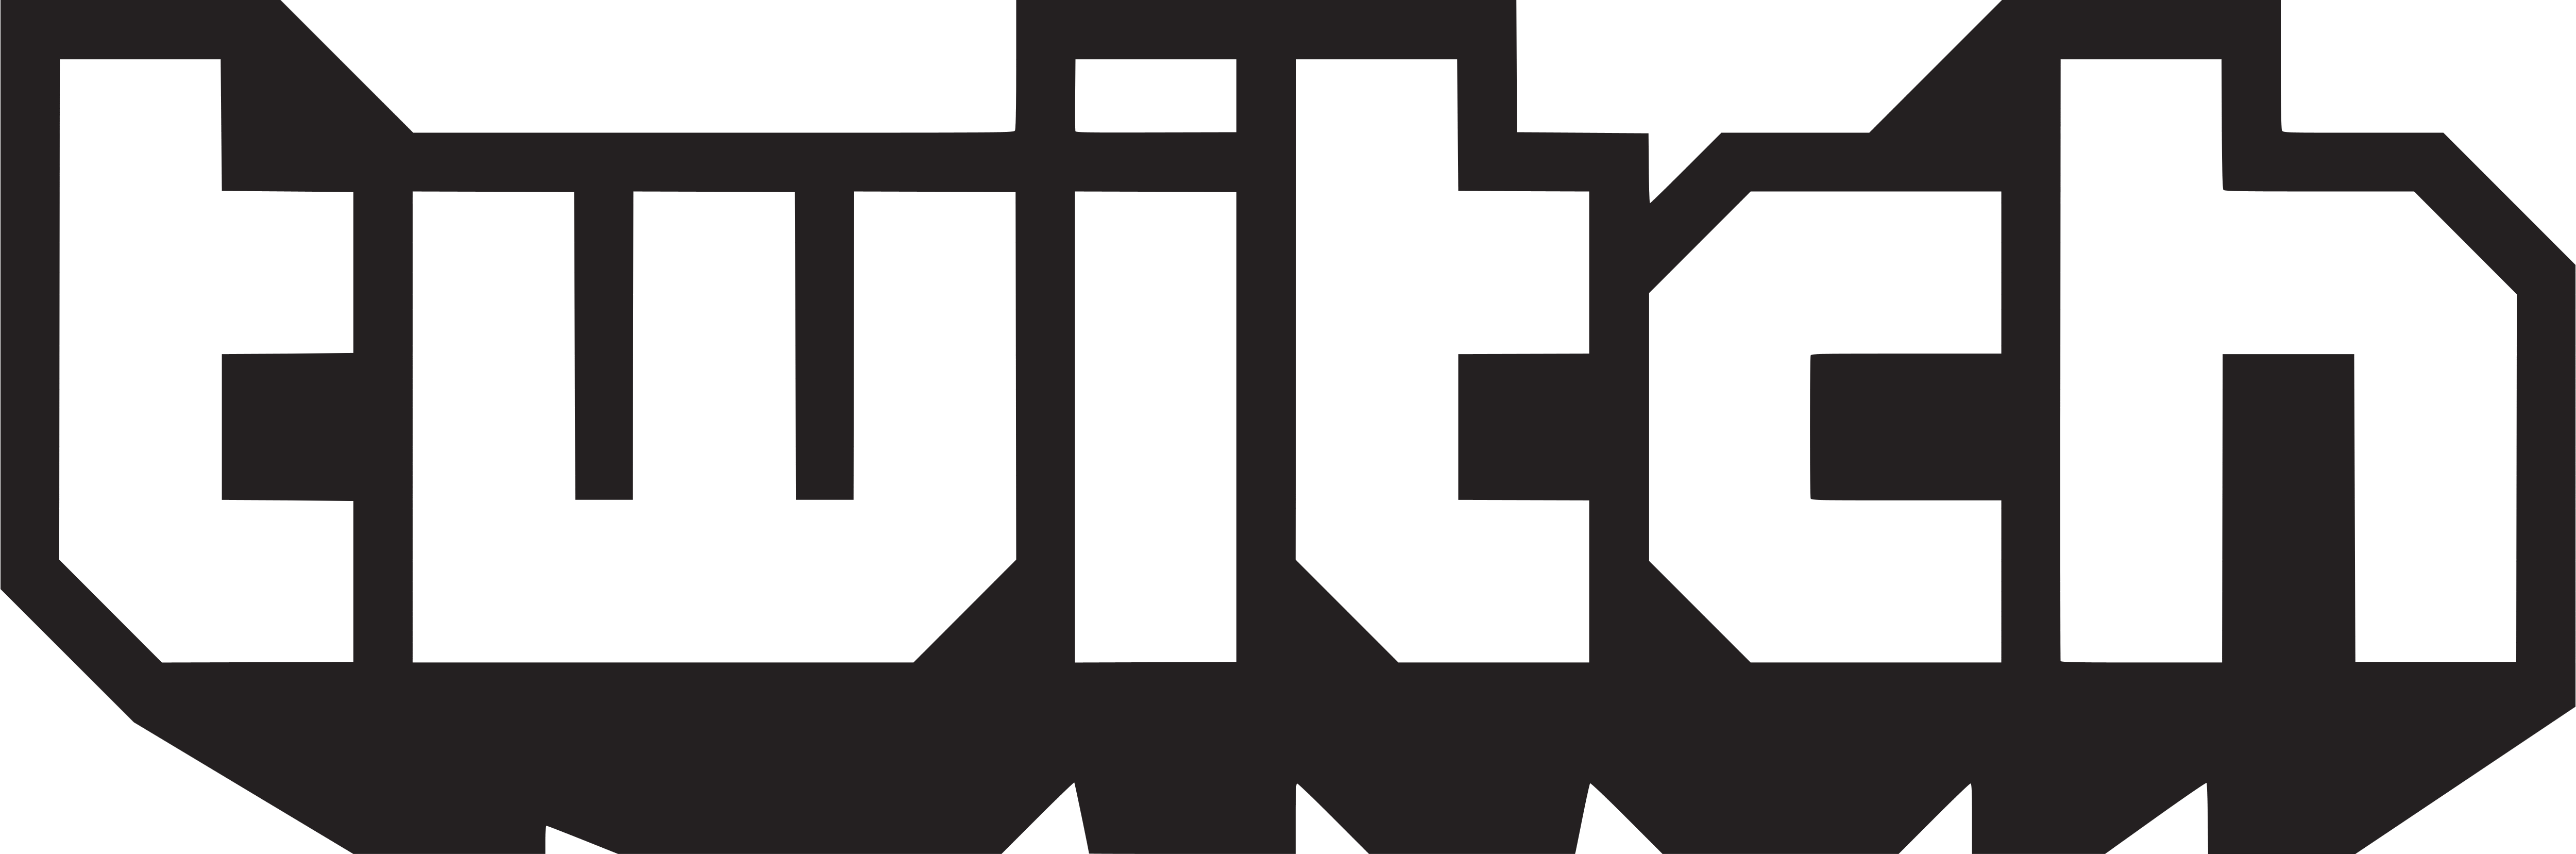 Twitch Icon Logo, Twitch Black PNG Symbol